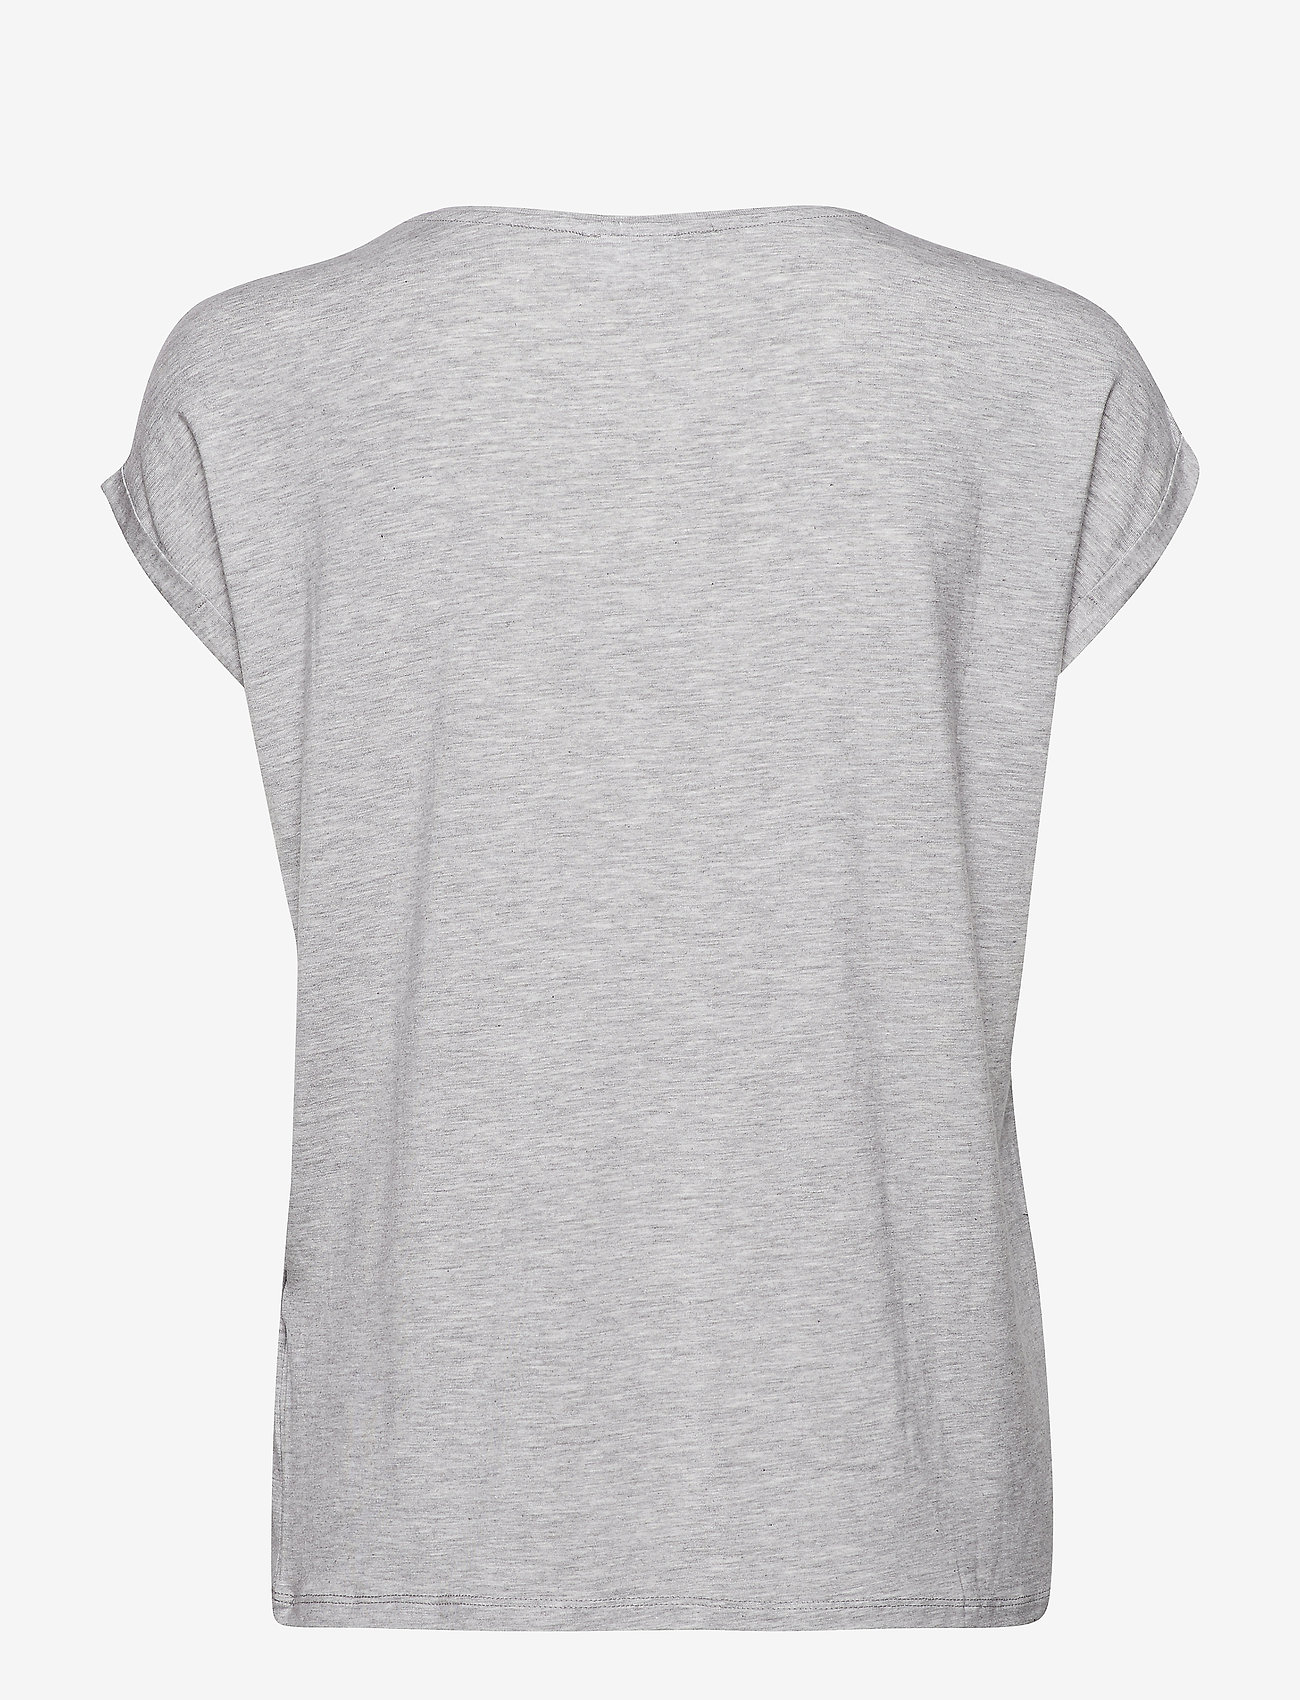 Vero Moda - VMAVA PLAIN SS TOP GA - t-shirts - light grey melange - 1